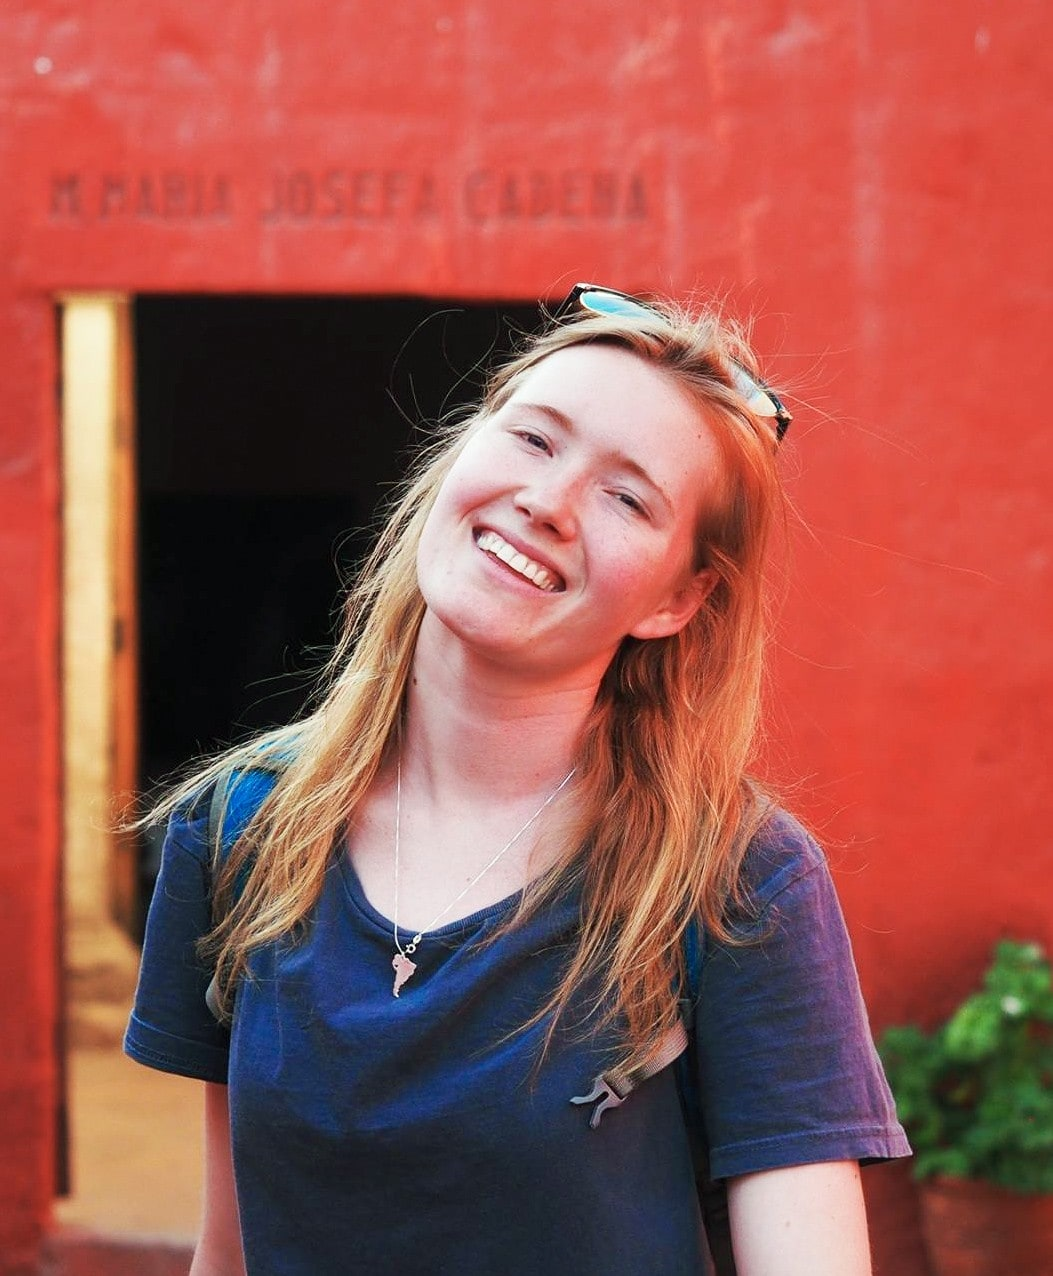 Picture of Madeleine Combe standing in front of a red wall, smiling